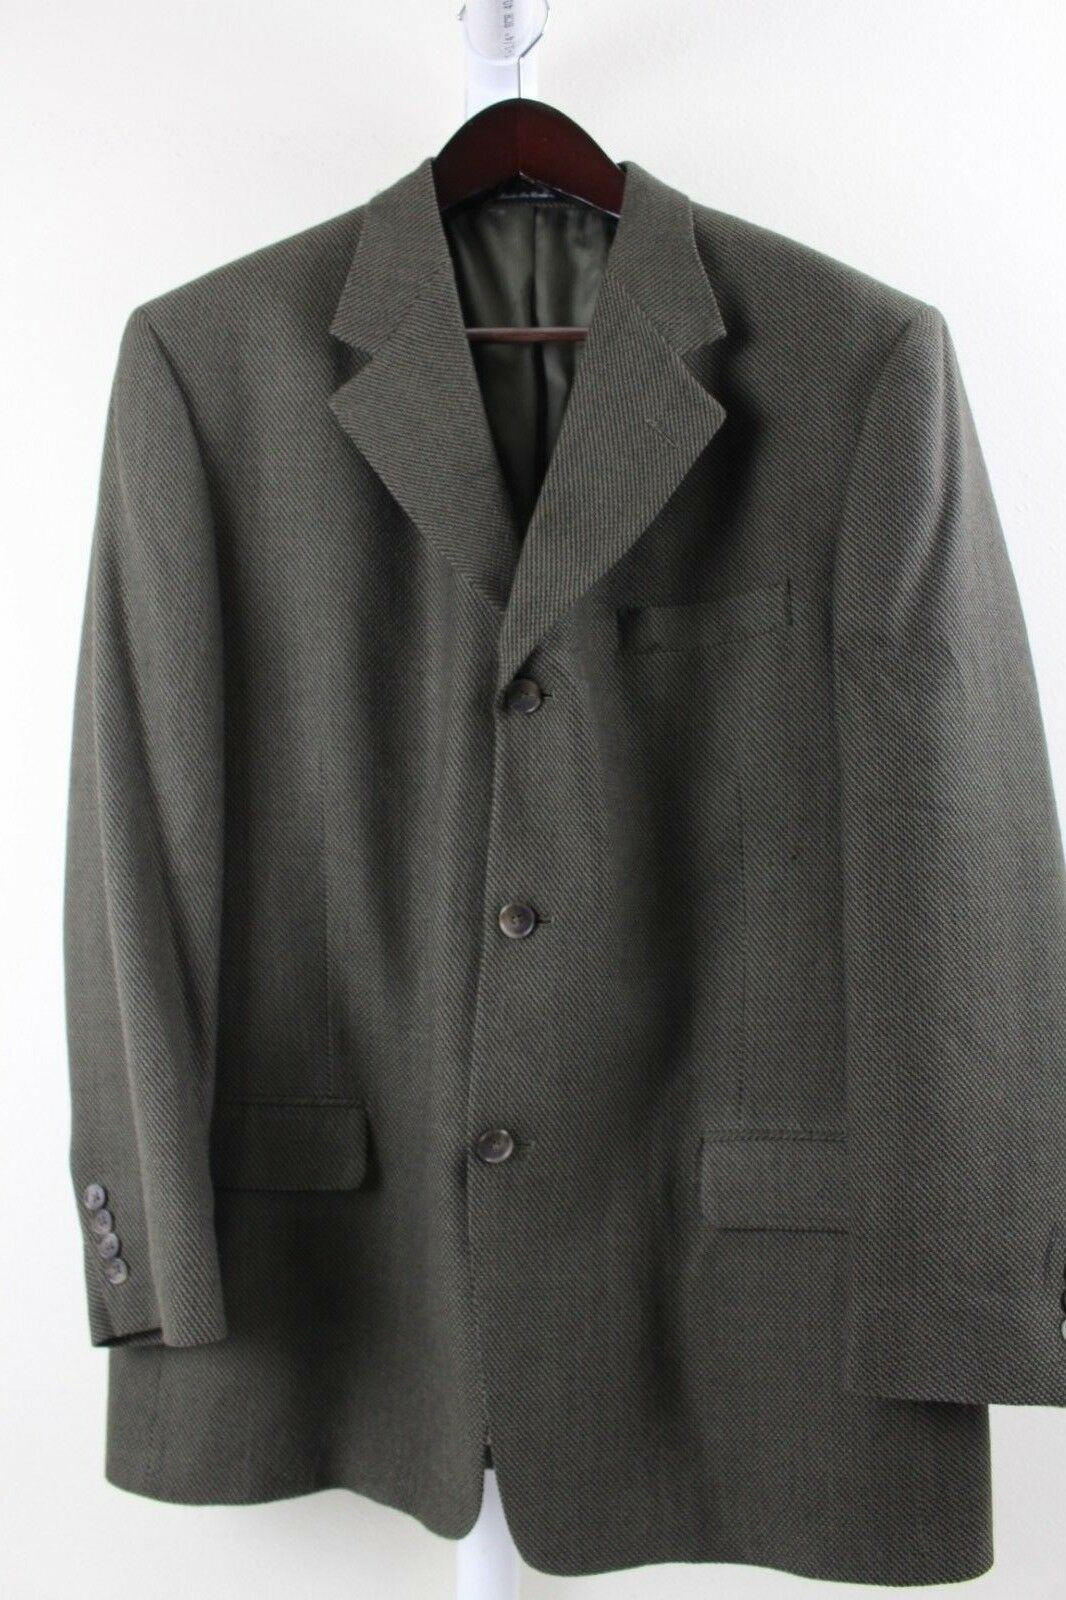 Perry Ellis 100% Wool Multi-Farbeed Grün 3 Button Lined Blazer Größe - 42R